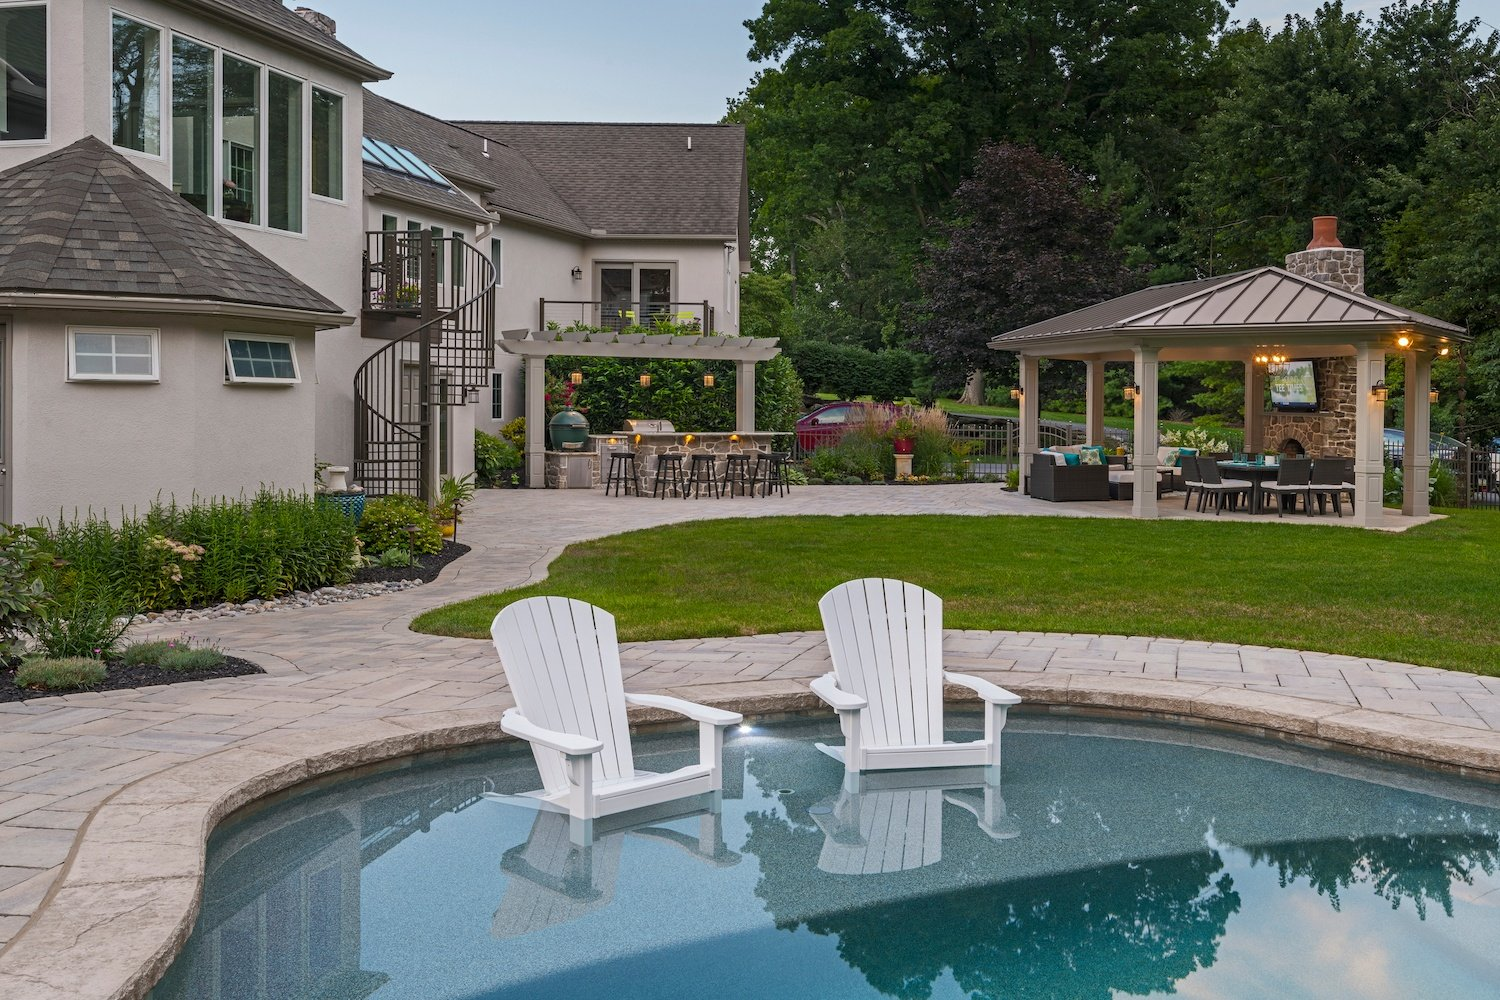 Strasburg, PA Landscaping Case Study: Creating the Ultimate Backyard Party Spot